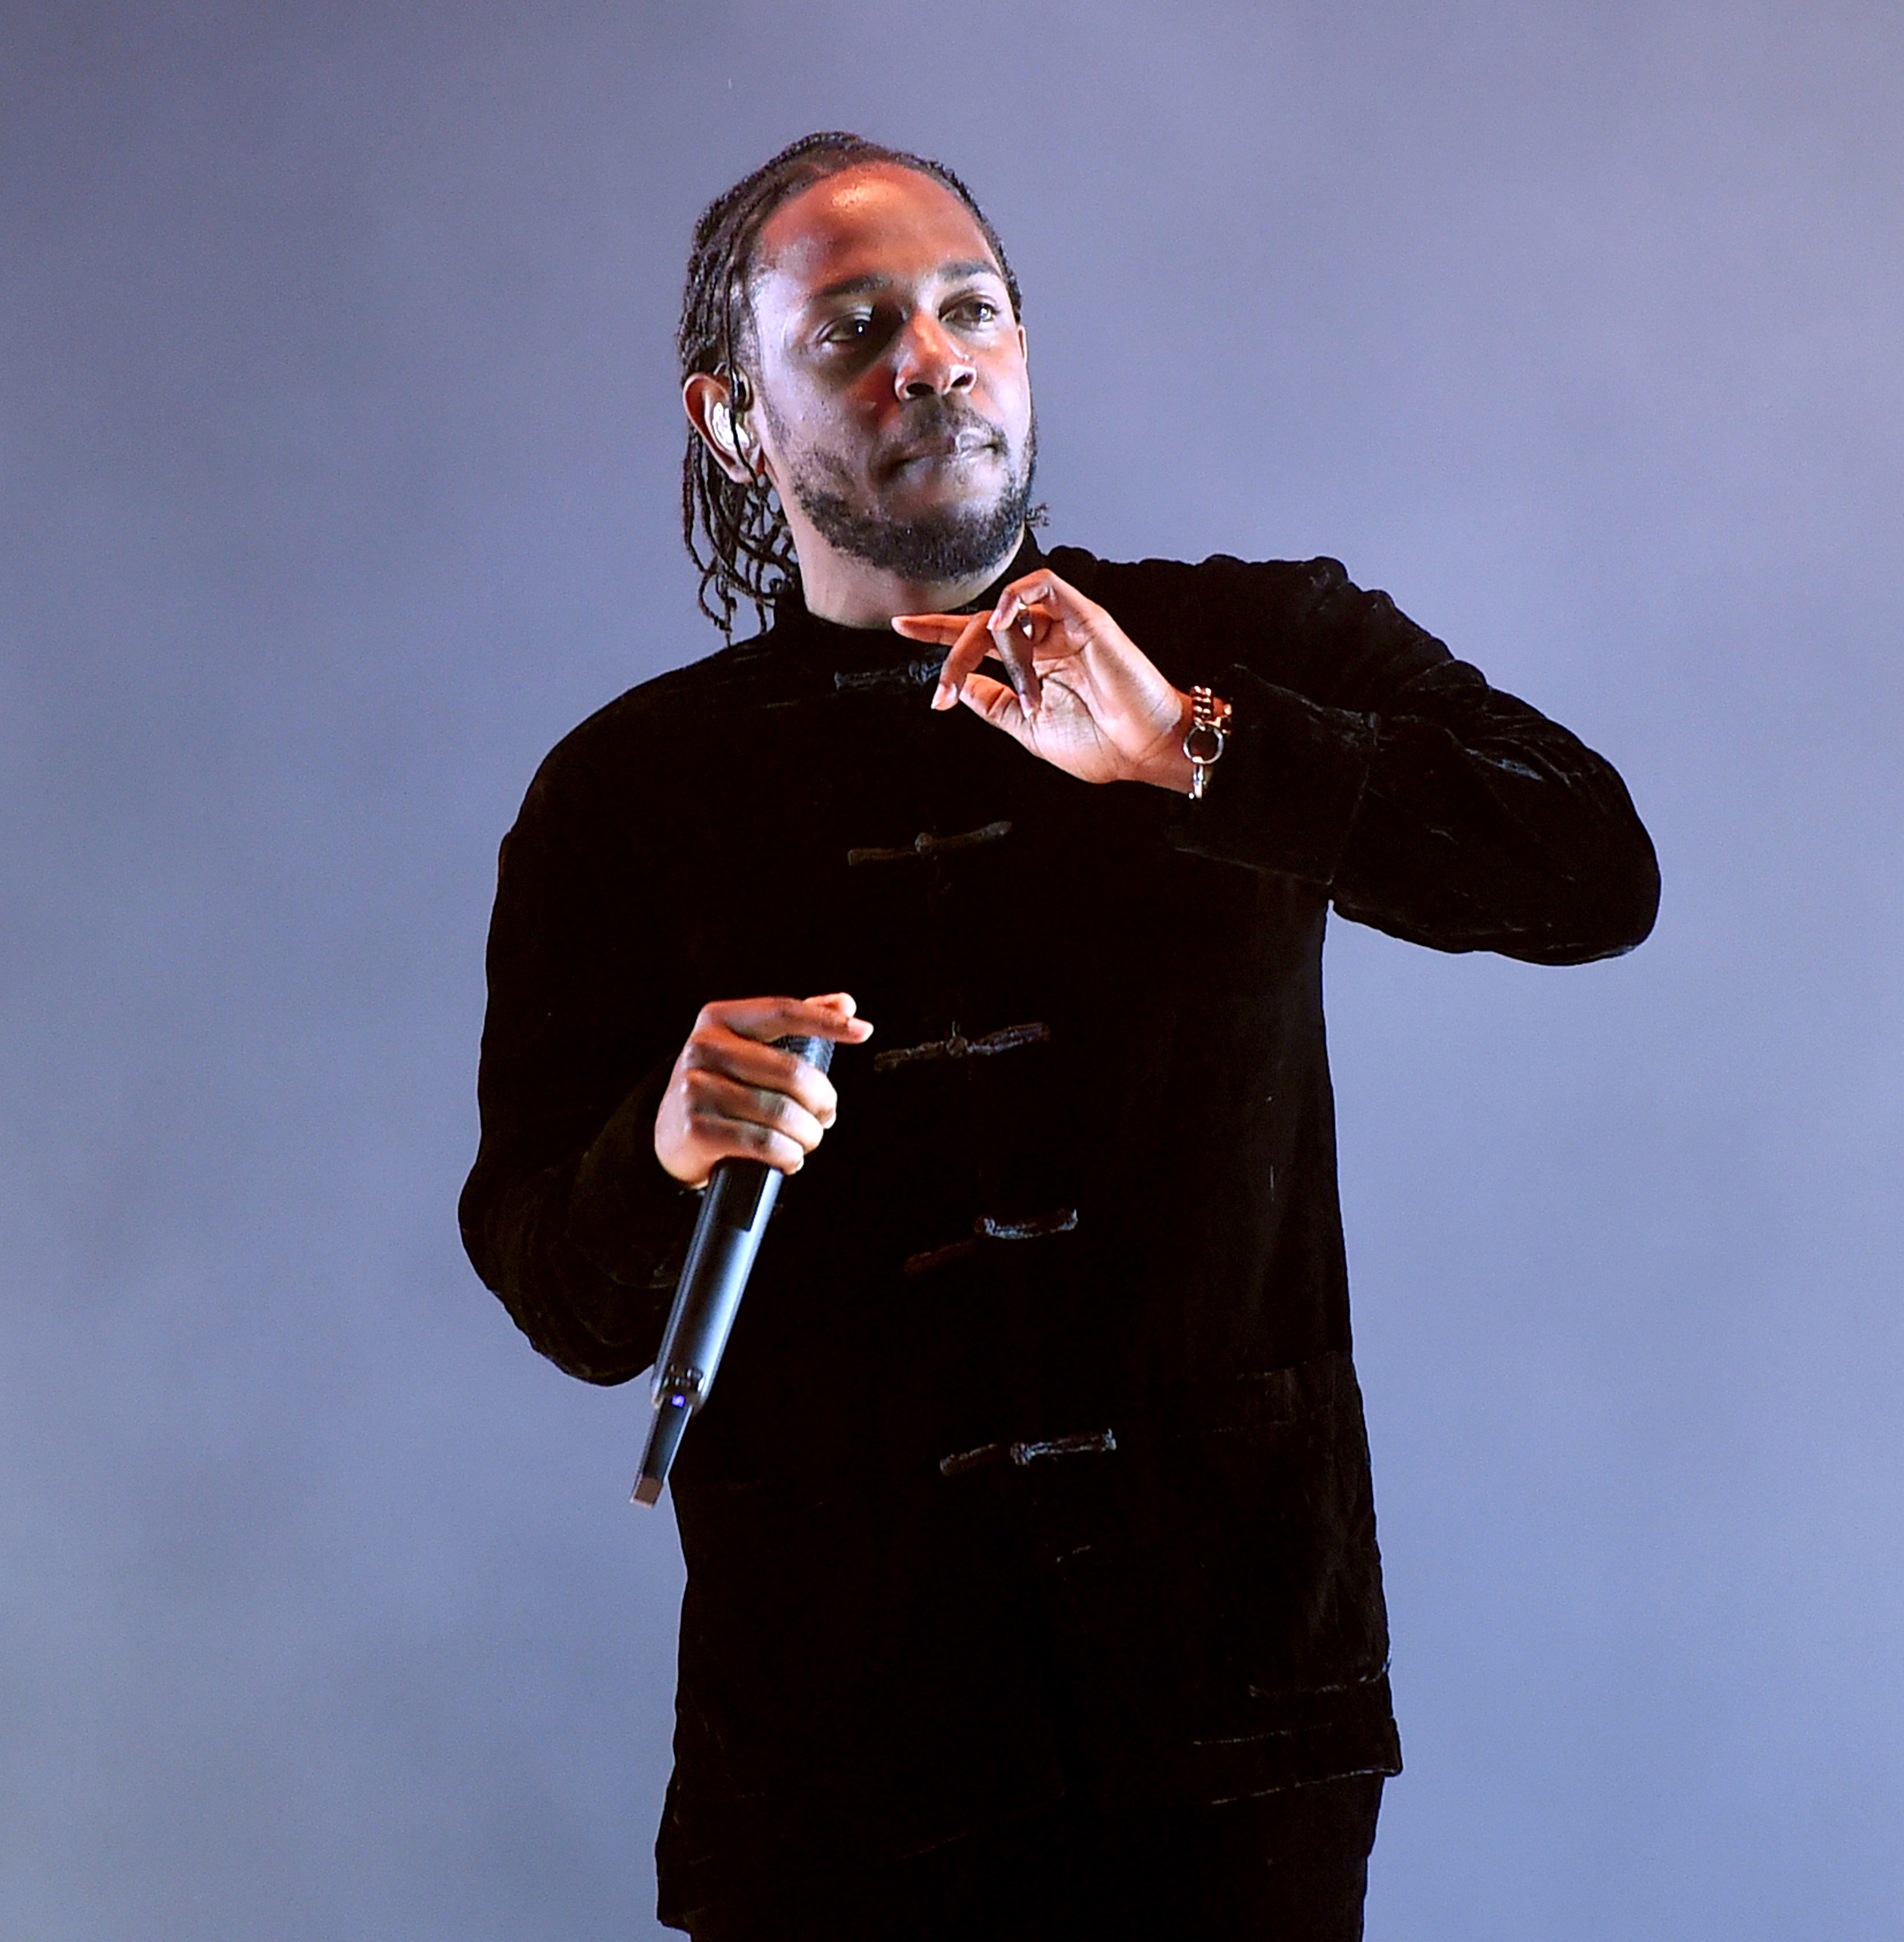 Kendrick Lamar performs on the Coachella Stage during day 3 (Weekend 2) of the Coachella Valley Music And Arts Festival on April 23, 2017 in Indio, California.